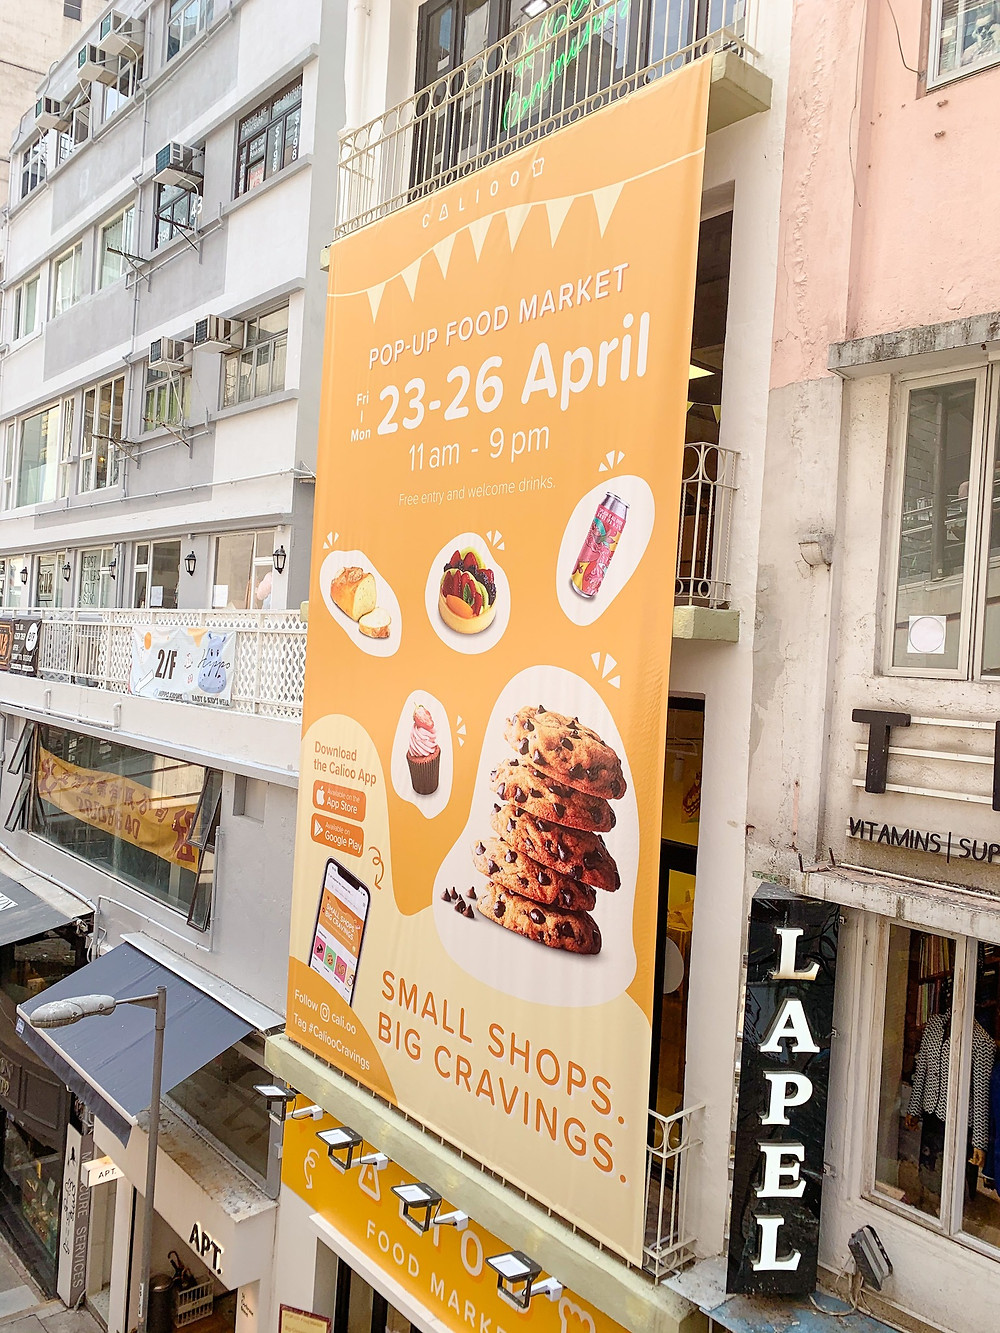 A large yellow banner of Calioo pop-up food market promoting its store in central